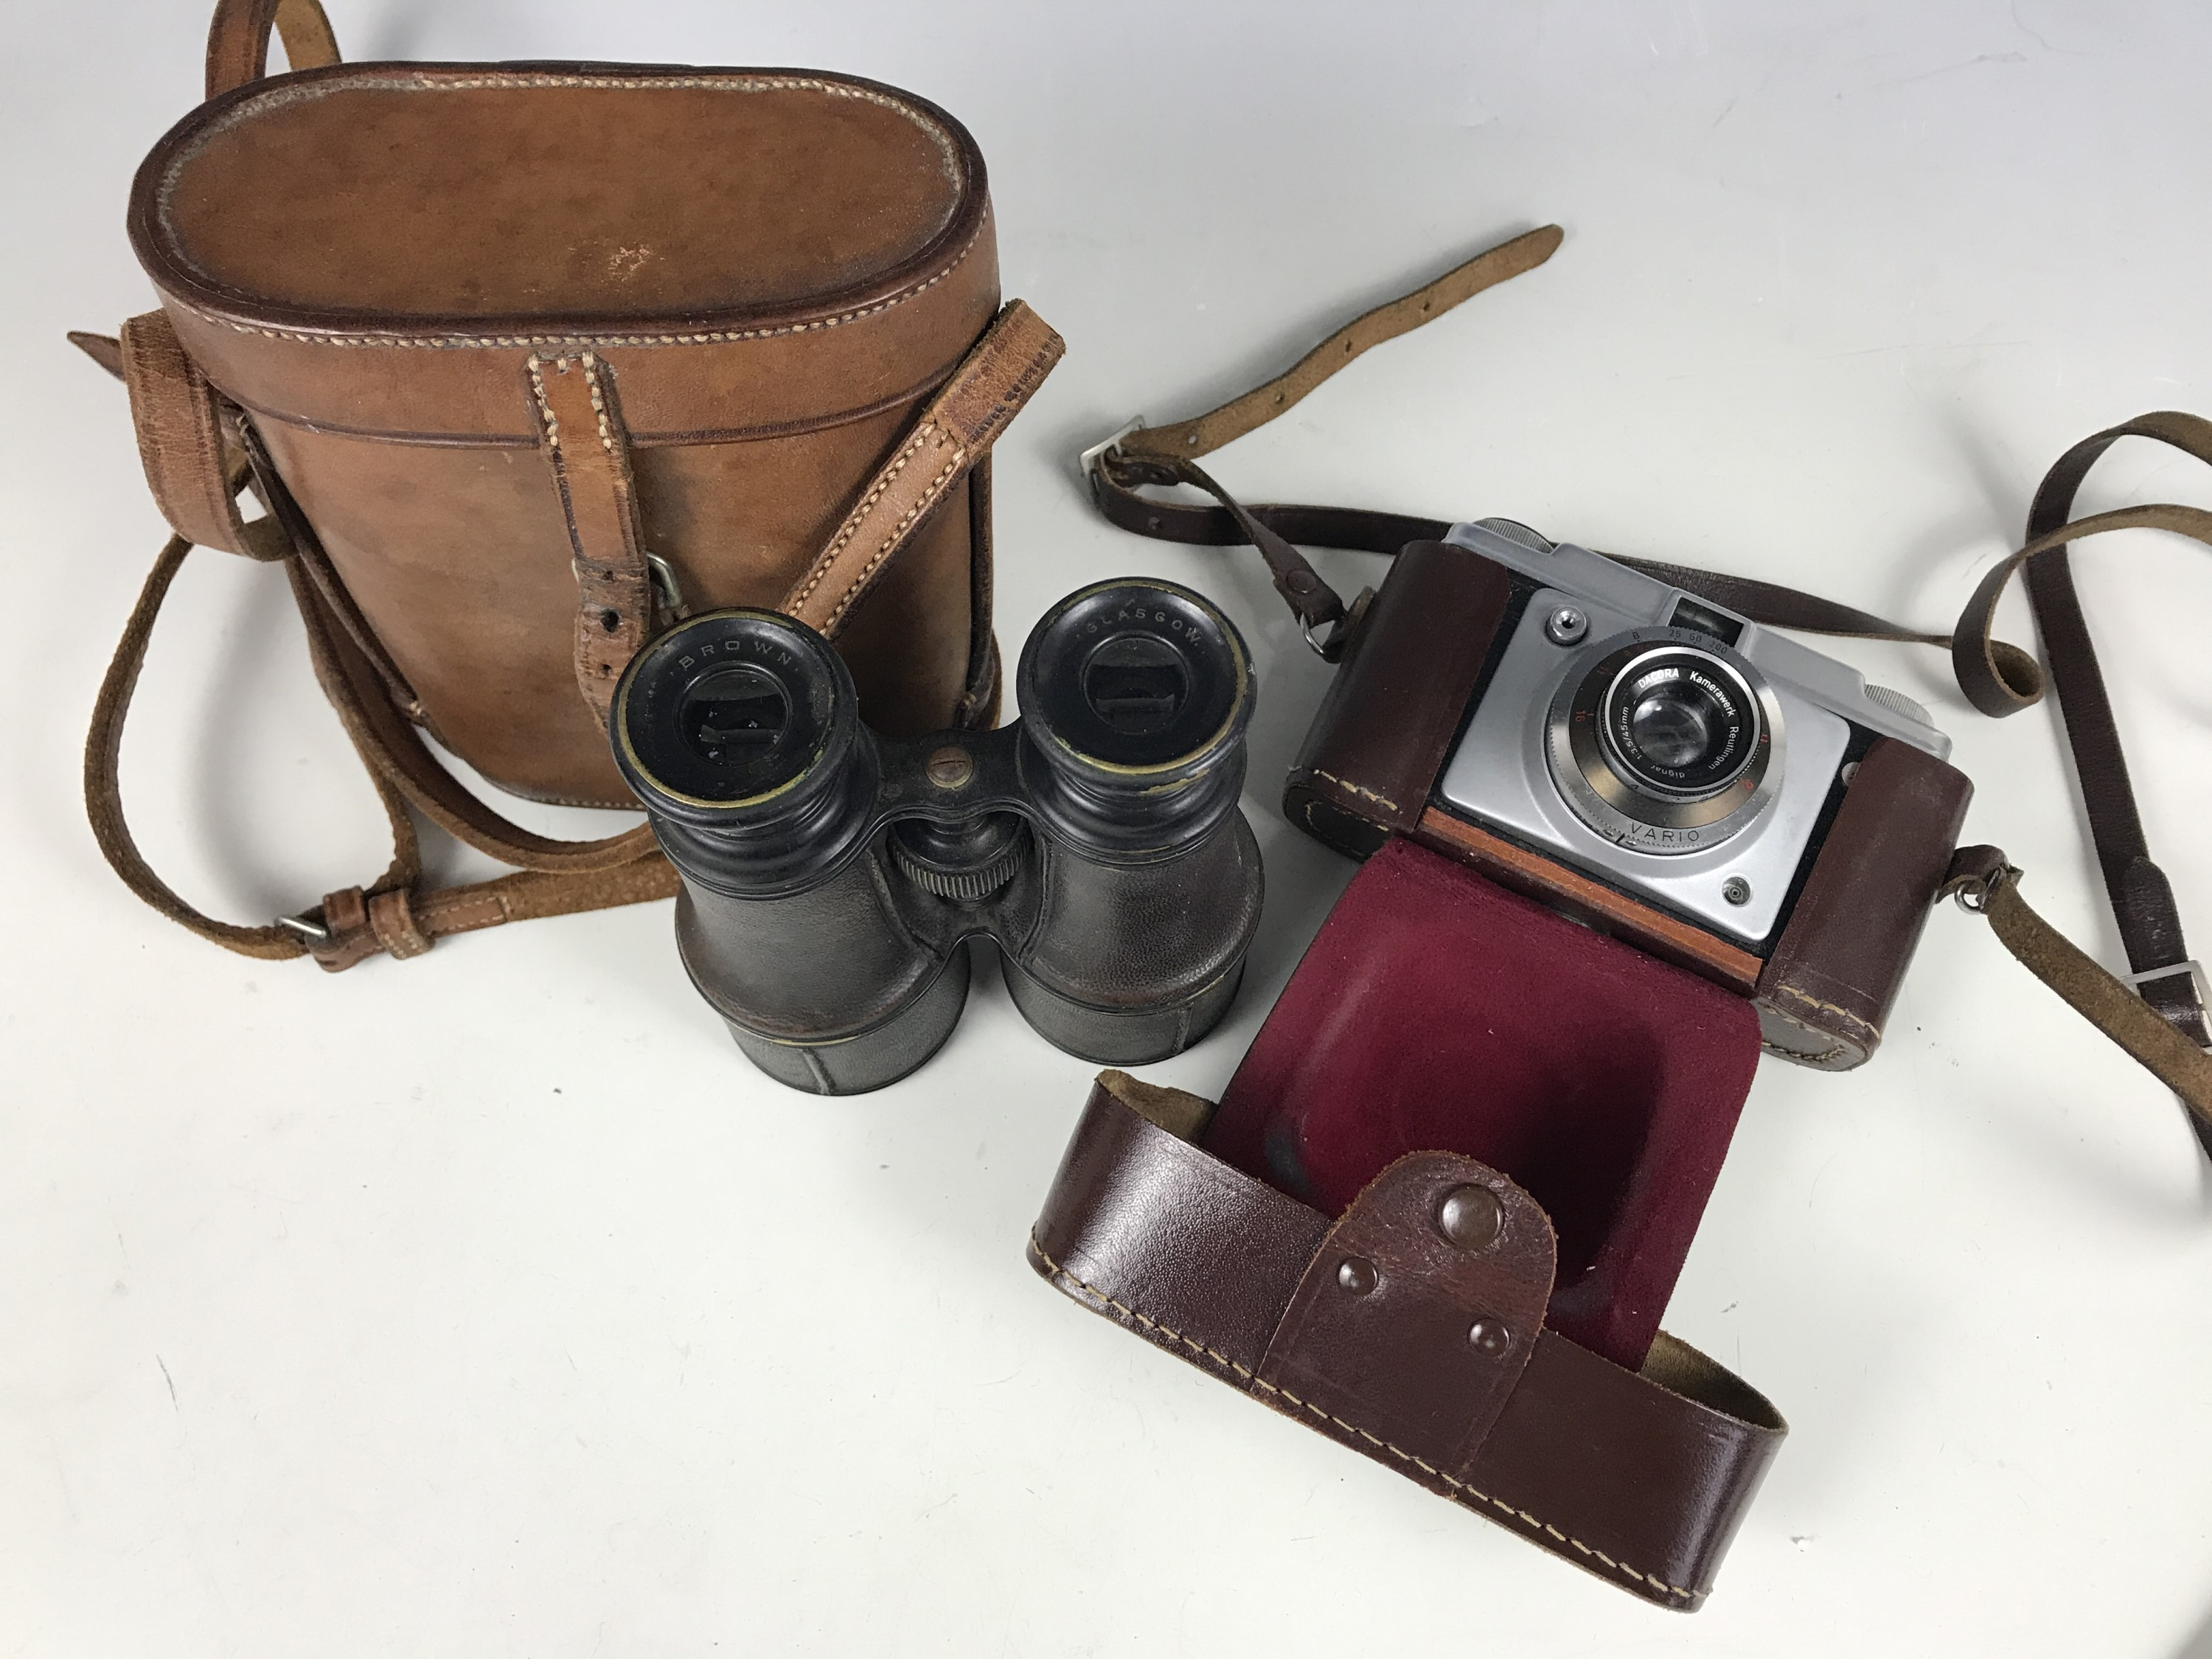 Lot 43 - An early 20th century set of binoculars and an Ilford camera